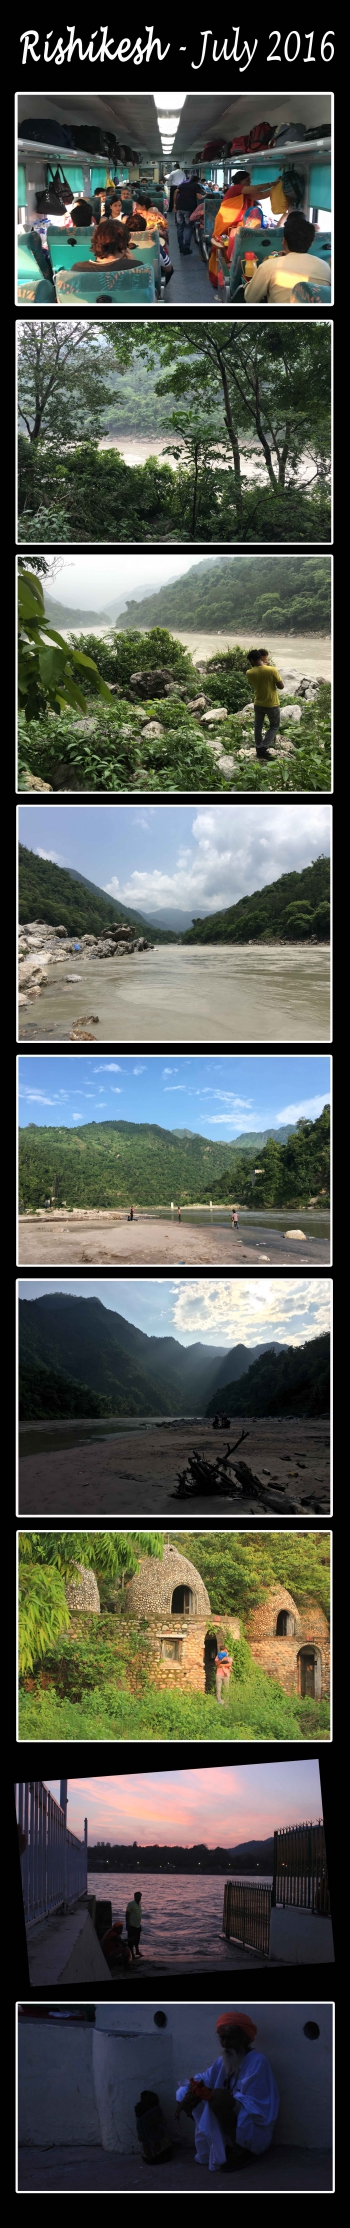 India,Rishikesh,Ganges,monsoon,beatles